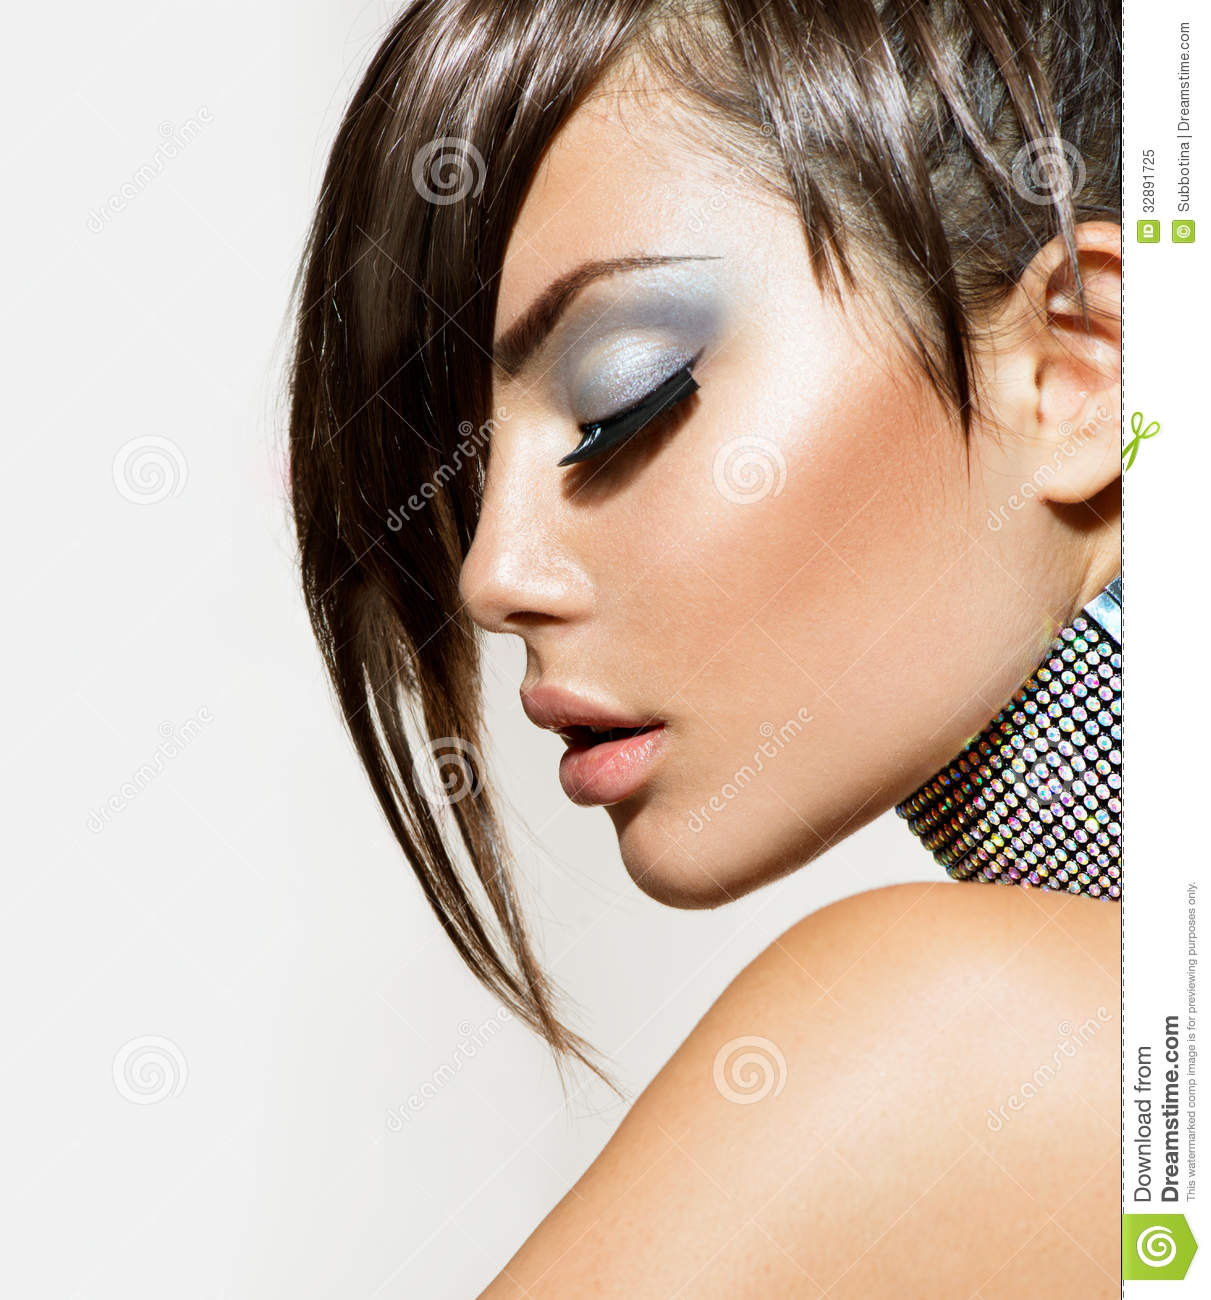 Fashion Beauty: Fashion Beauty Girl Stock Image. Image Of Hairstyle, Dark